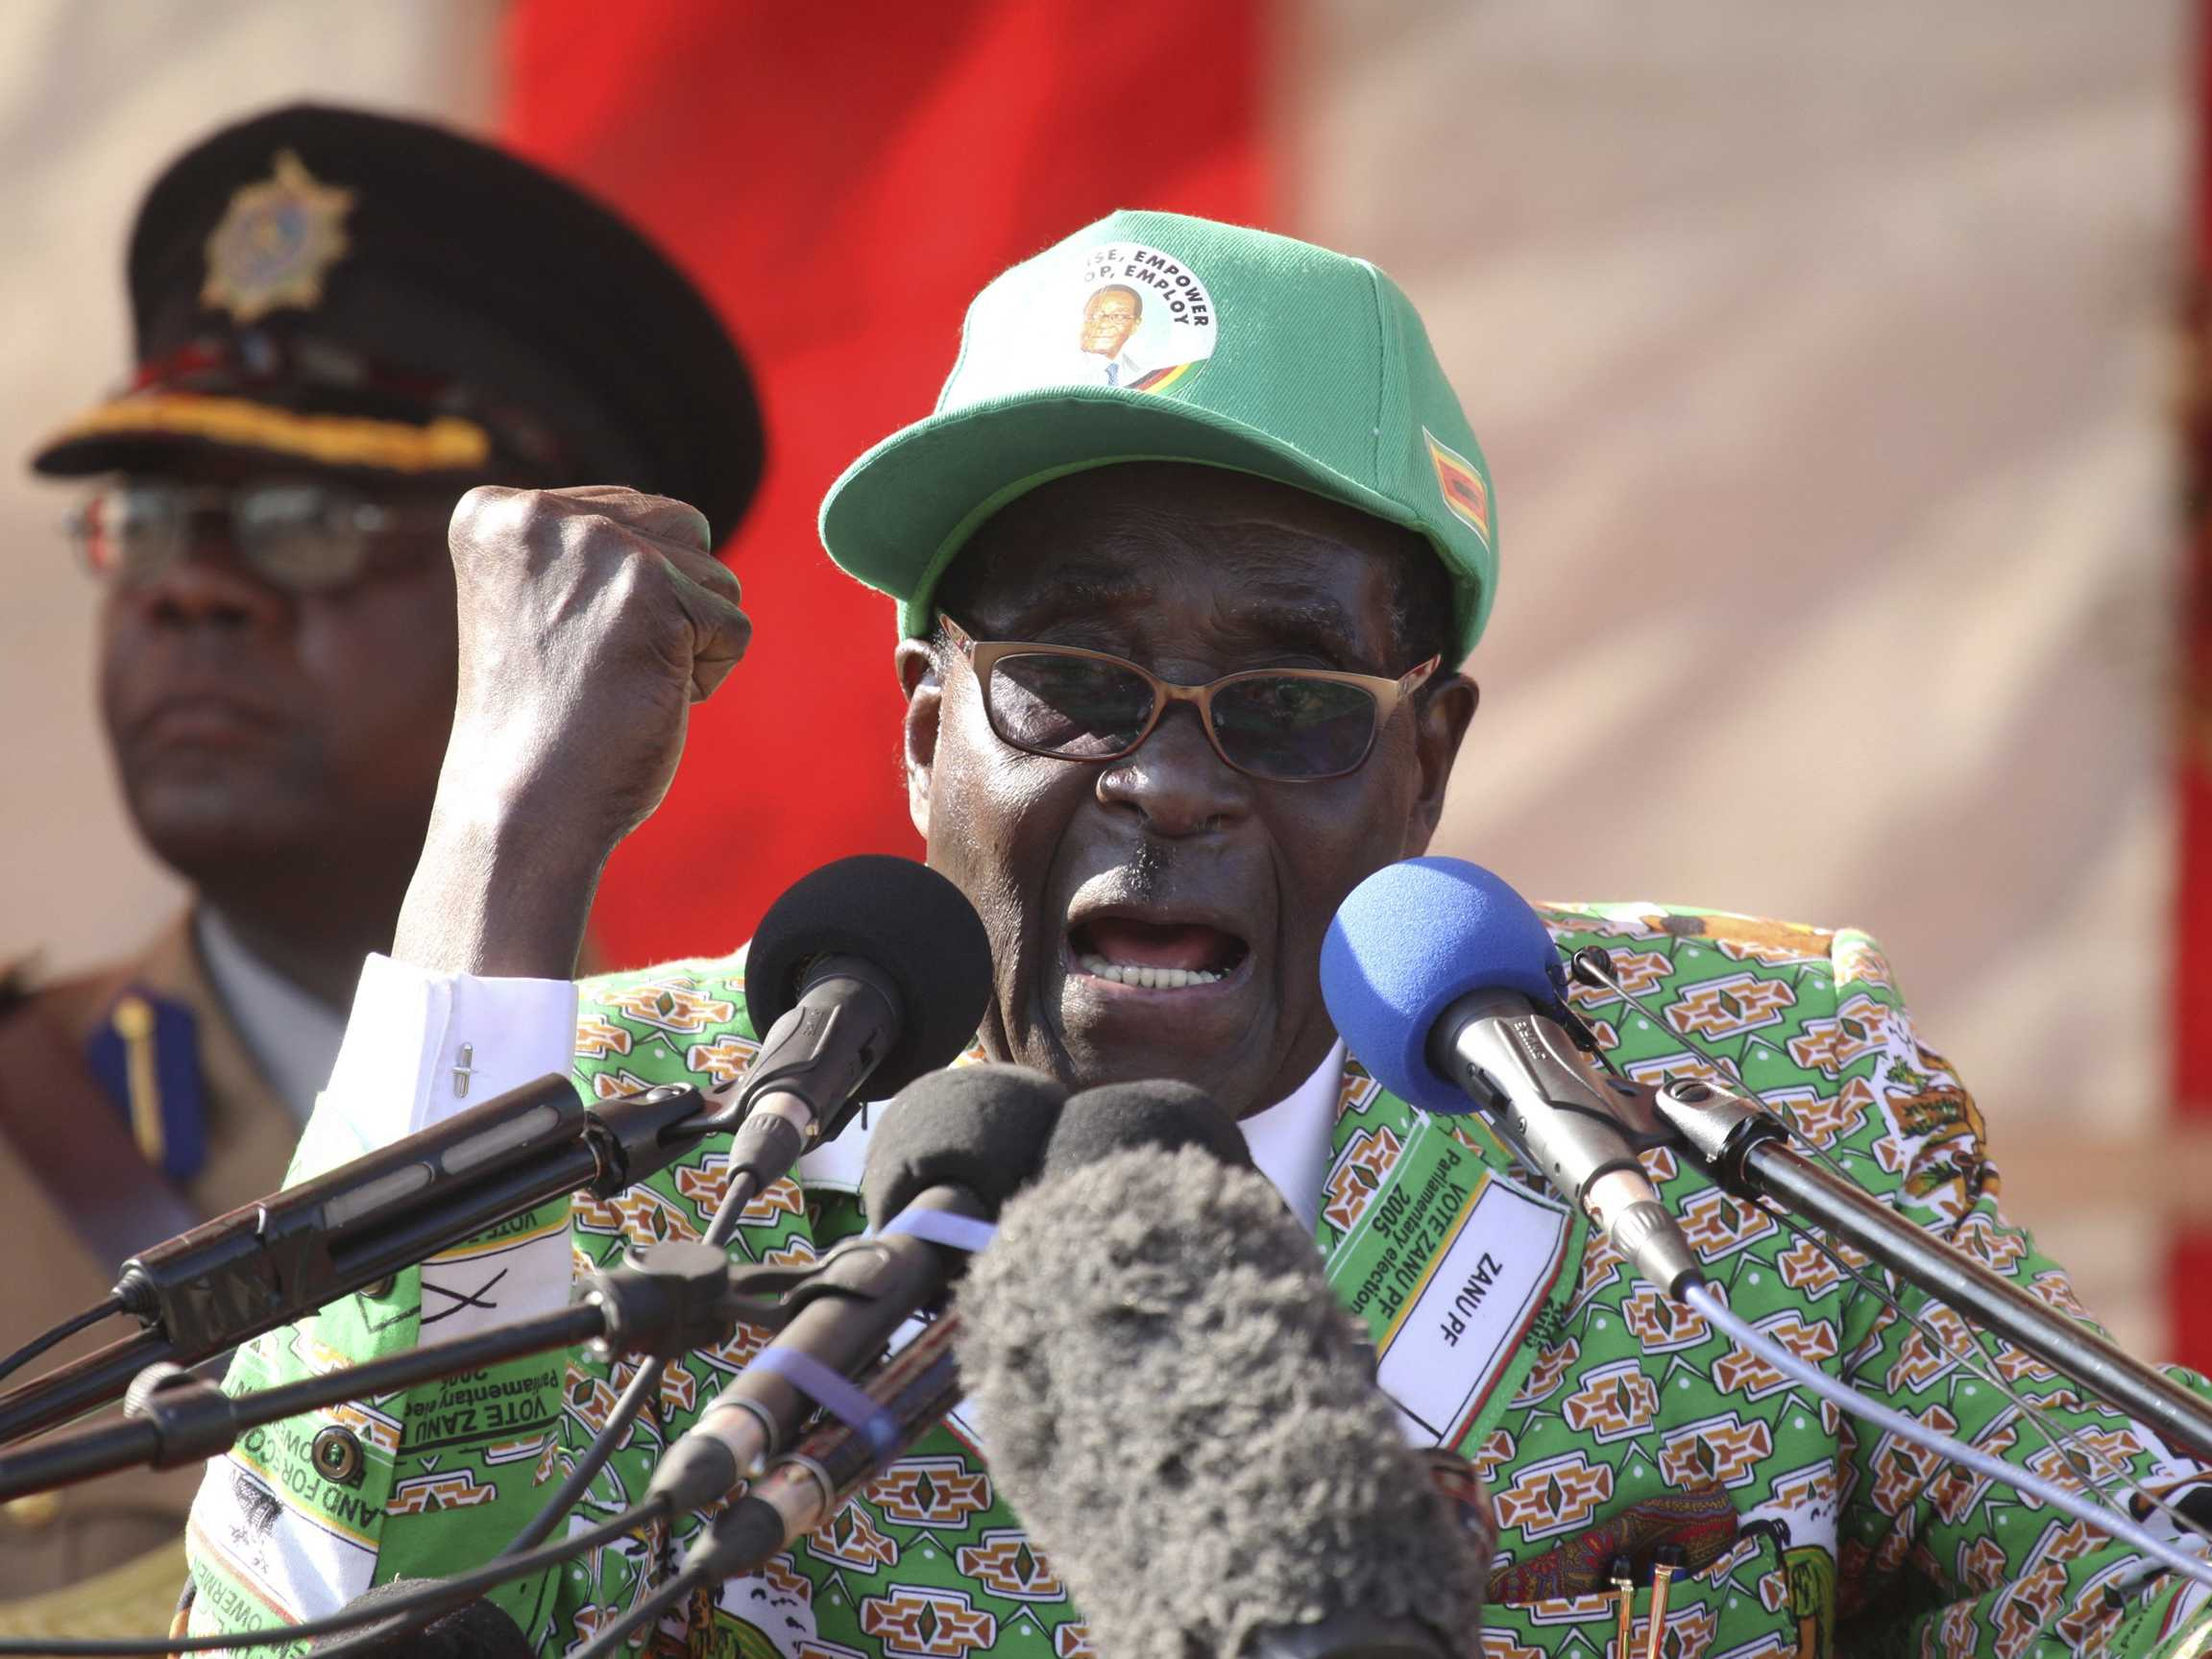 35 years of absolute power have absolutely corrupted and corroded Mugabe's mind!